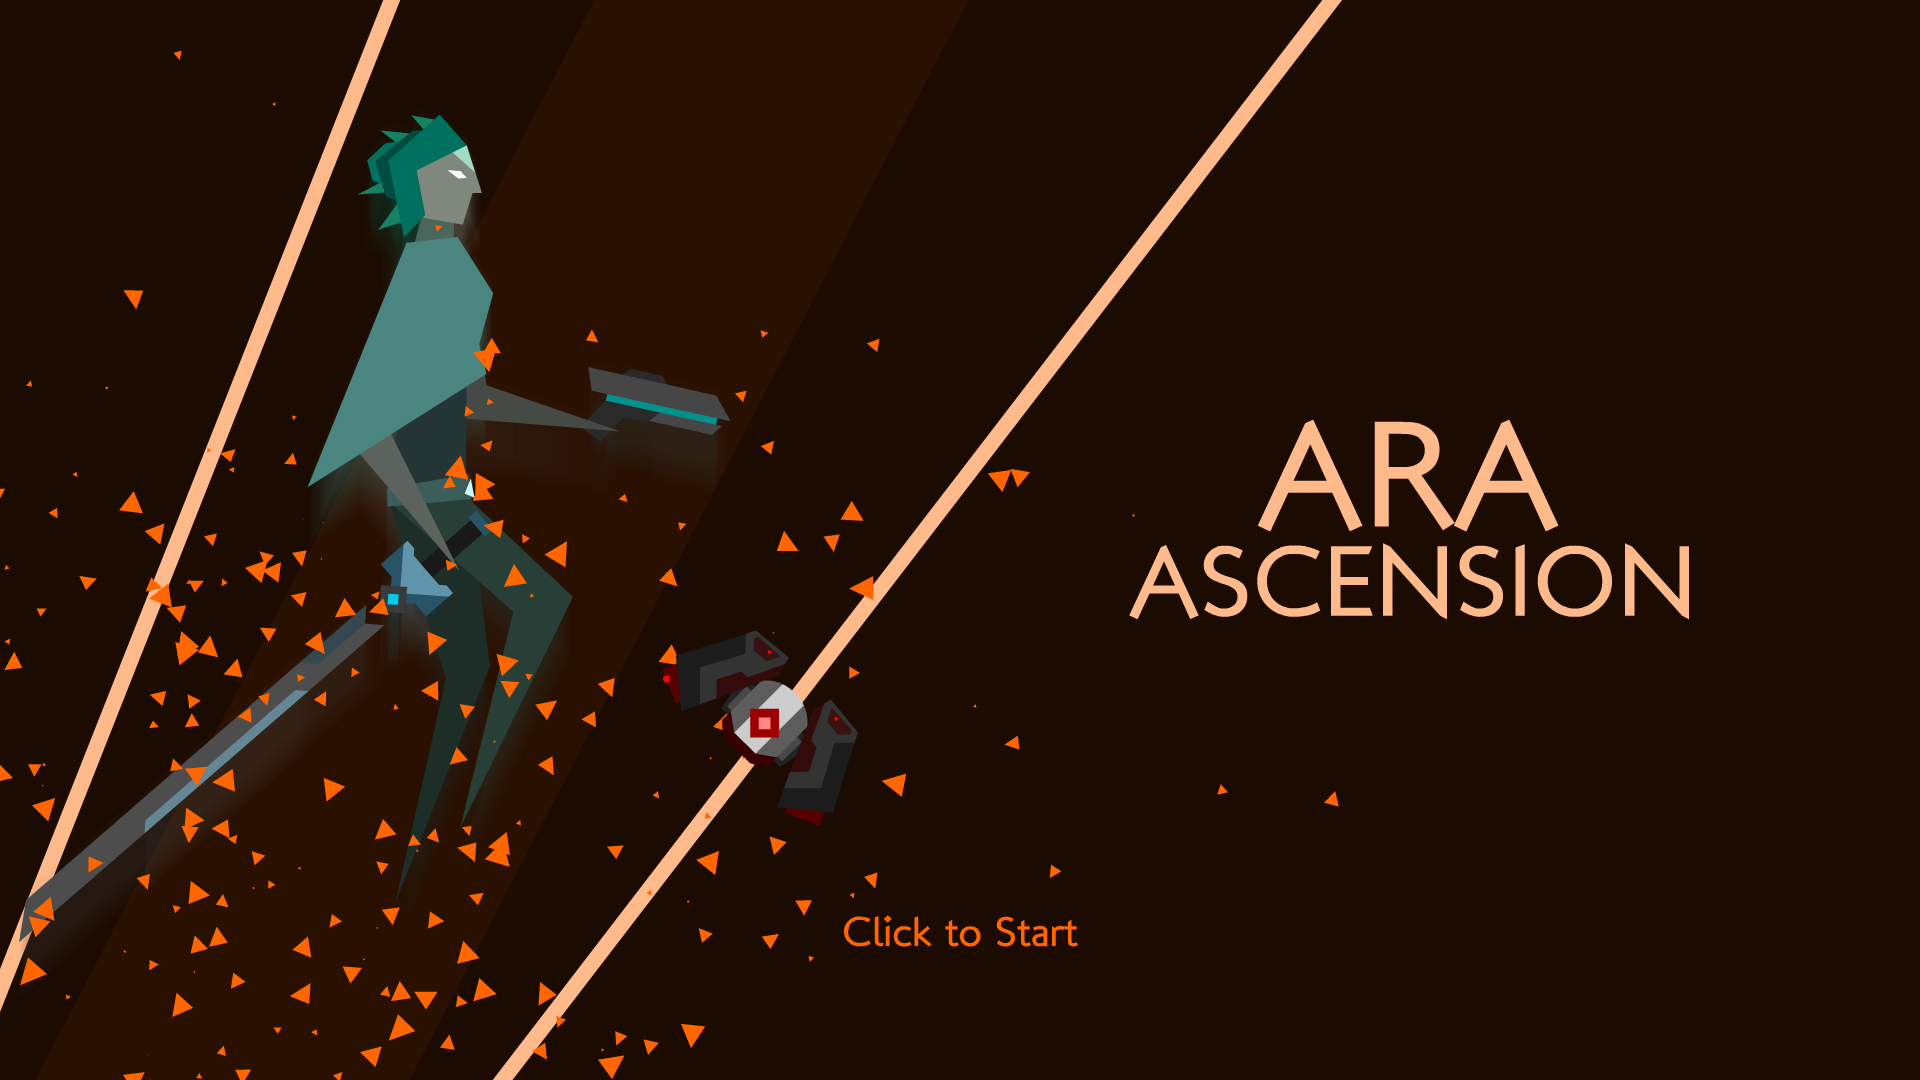 Ara: Ascension